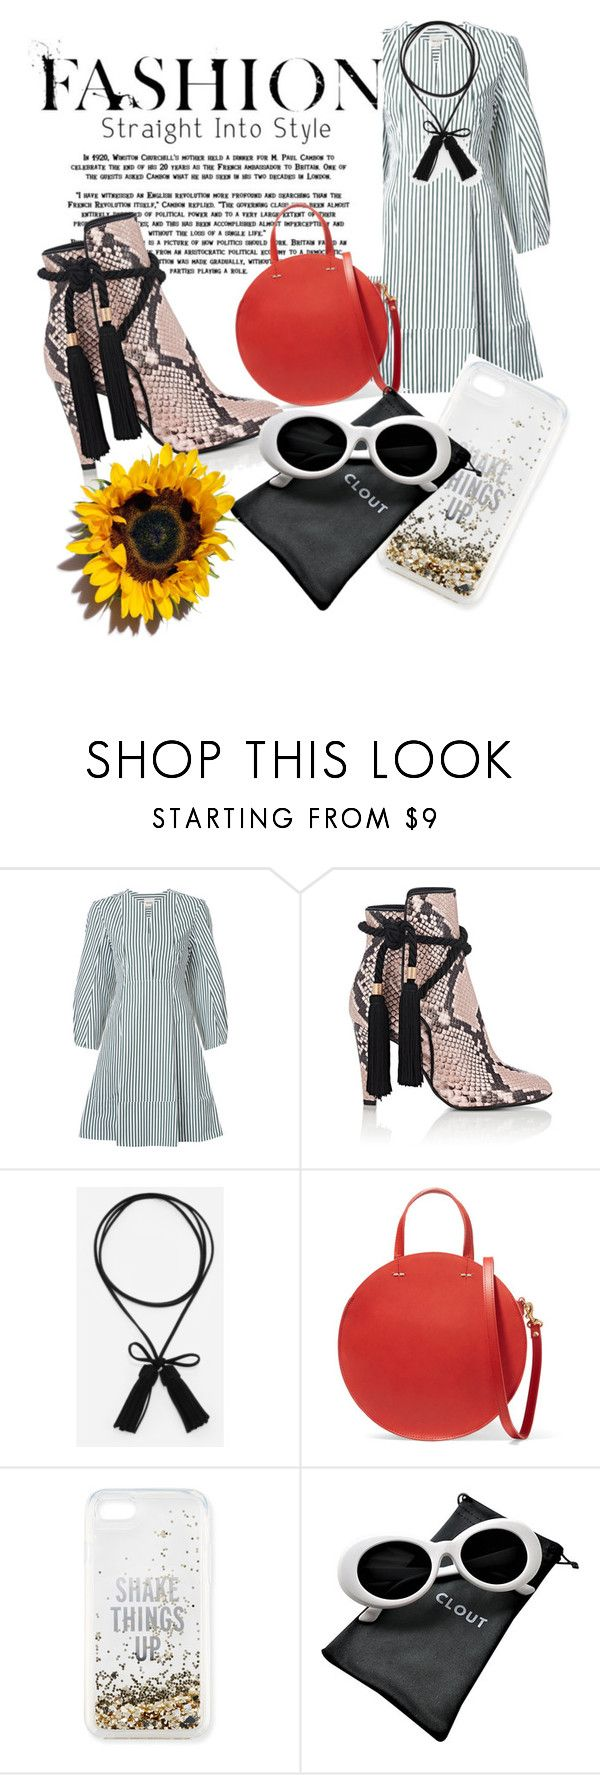 """Untitled #365"" by santyfebrina-nasution on Polyvore featuring Khaite, Philosophy di Lorenzo Serafini, CHARLES & KEITH, Clare V. and Kate Spade"